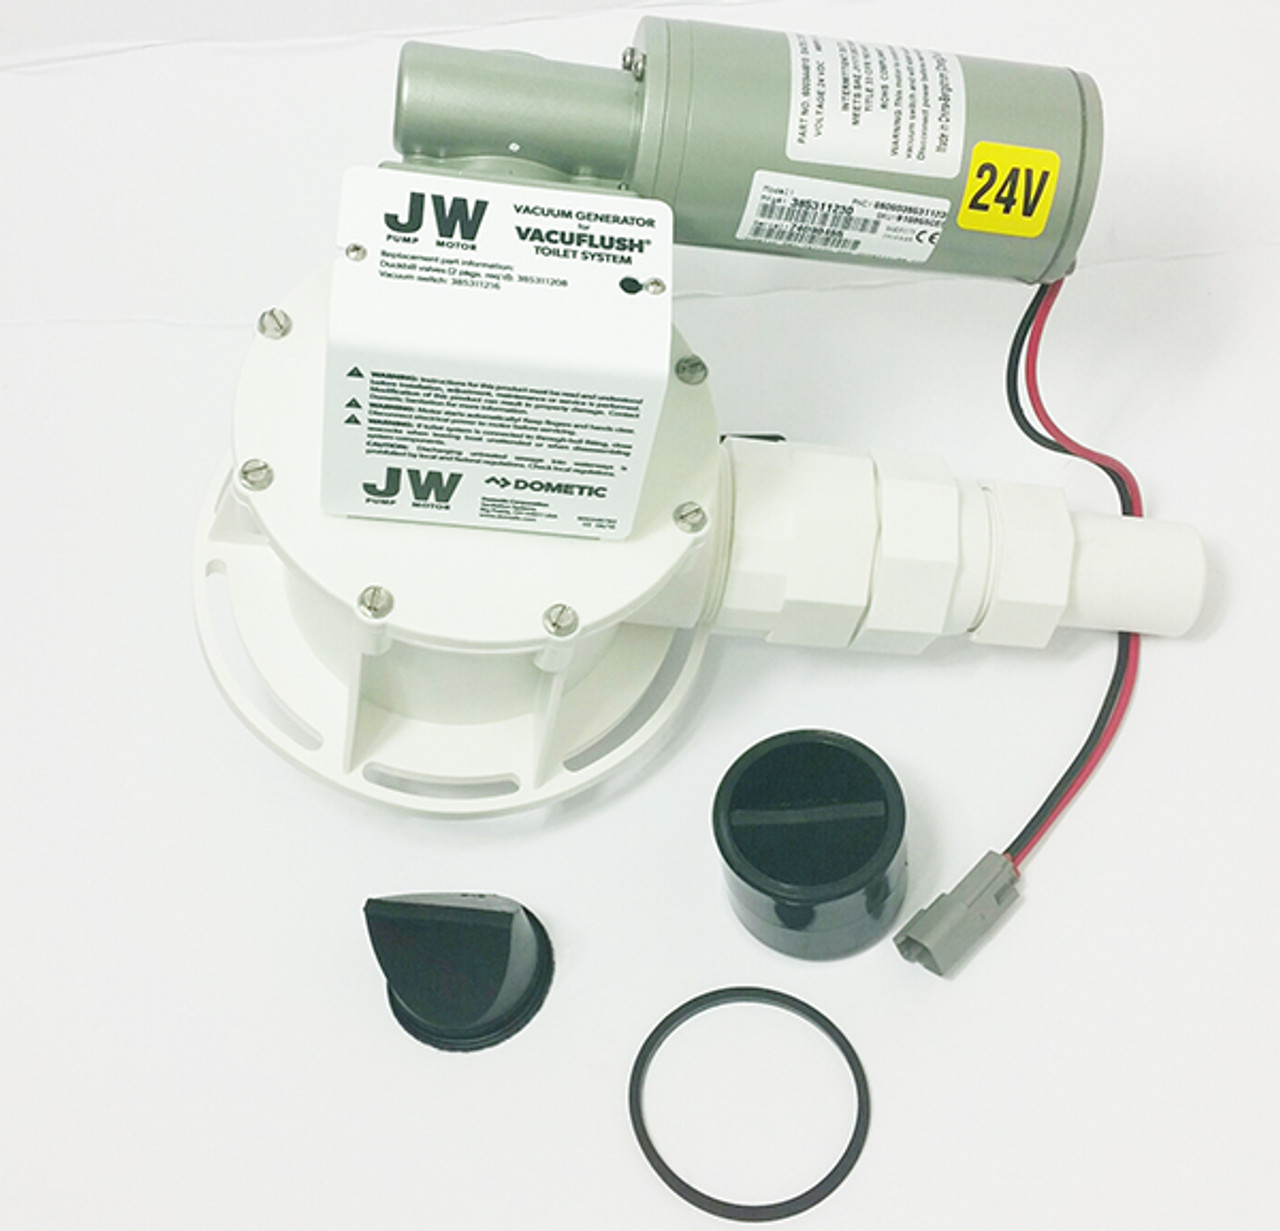 KIT, JW24 PUMP REPLACEMENT * This product may not be available in all areas. Please call for more information.